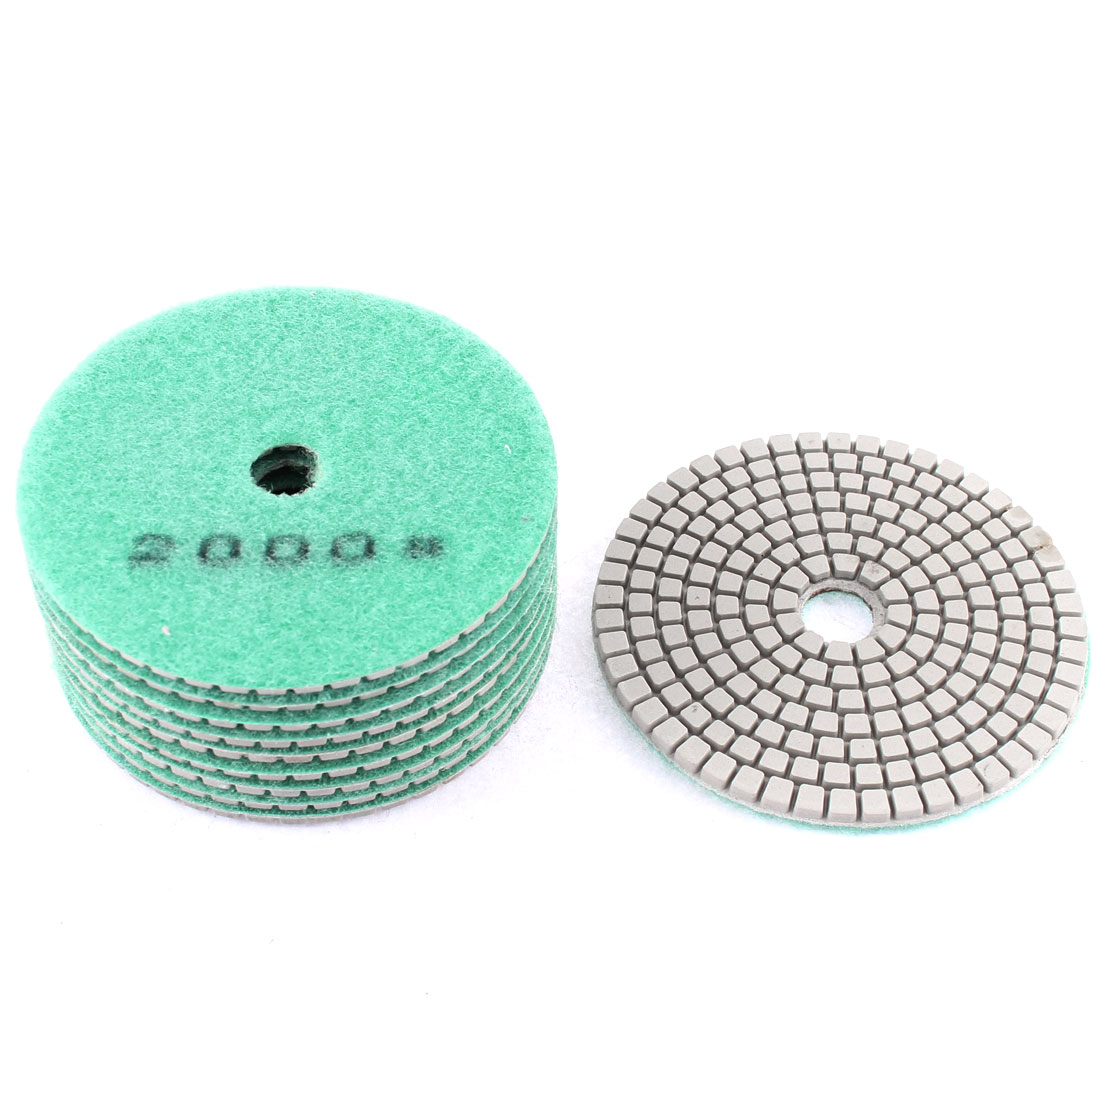 "Granite Stone Concrete Marble Diamond Polishing Pads 4"" Dia 10pcs"